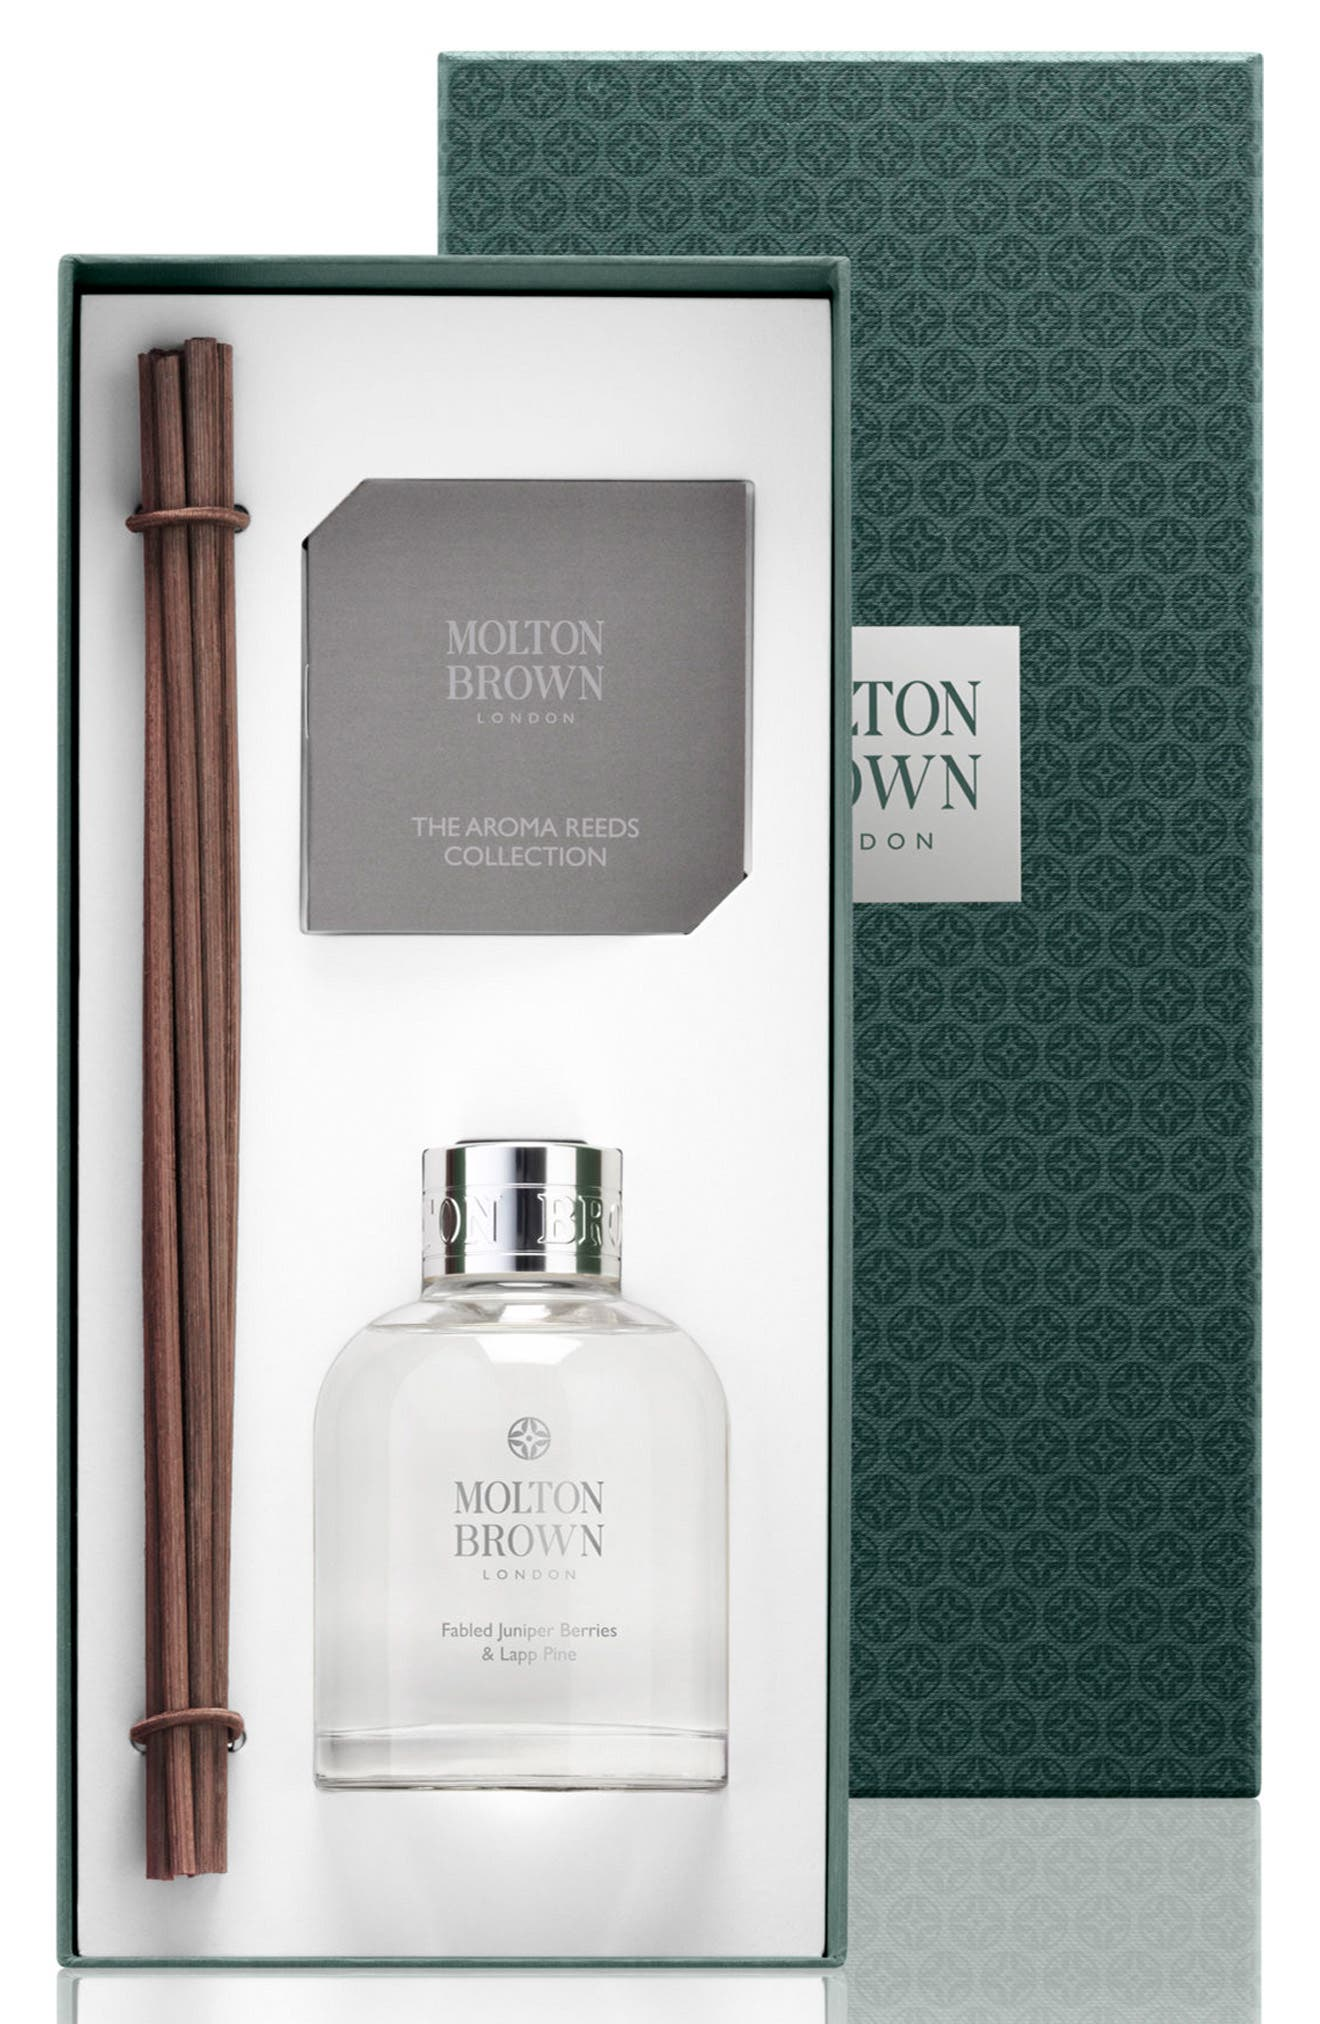 MOLTON BROWN Fabled Juniper Berries & Lapp Pine Aroma Reeds (Limited Edition)